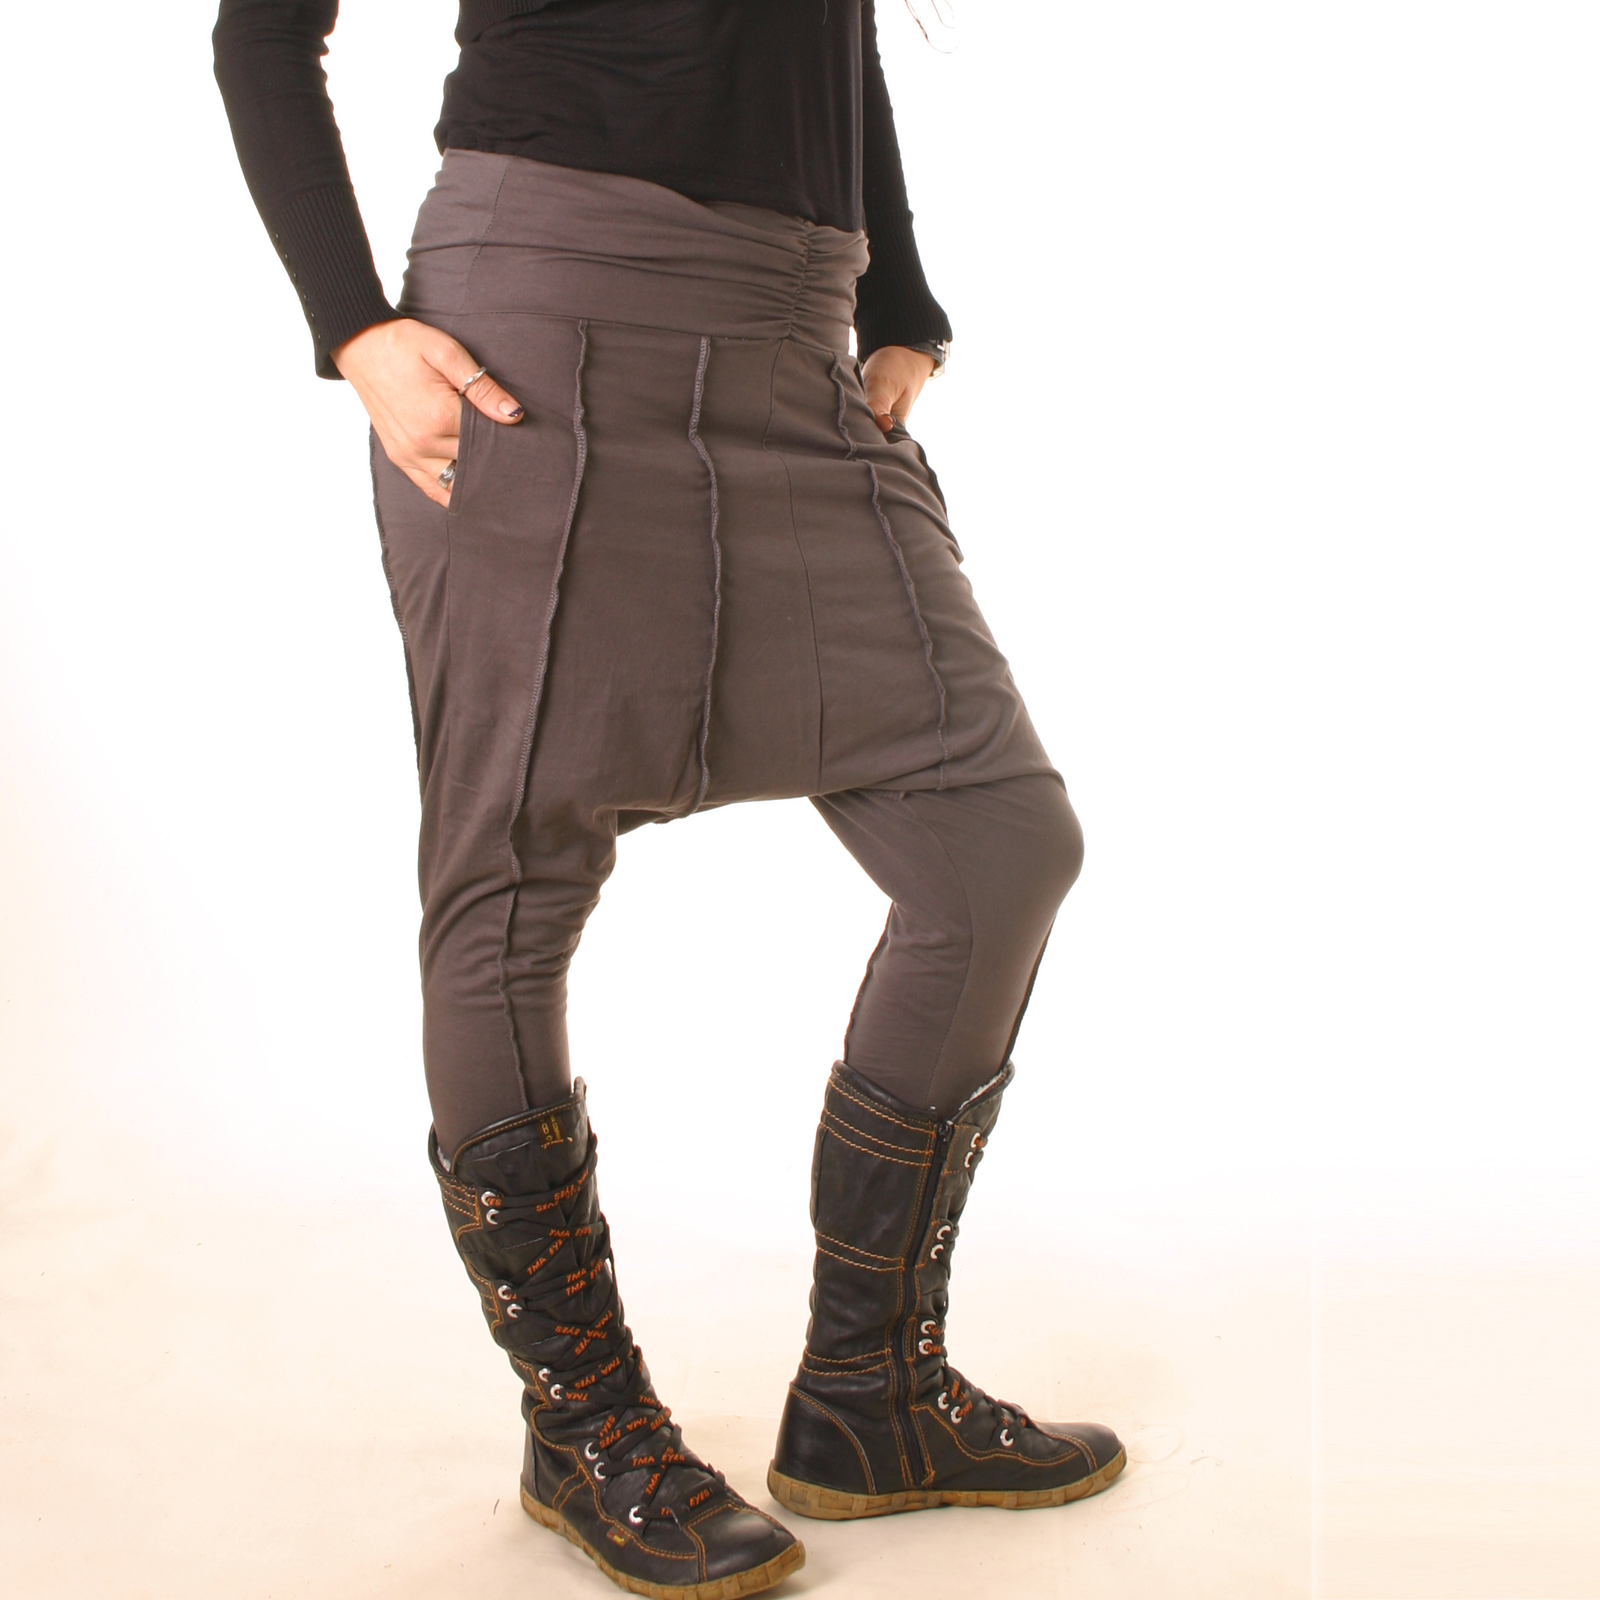 vishes haremshose chino patchwork hose trouser stiefel hose yoga sarouelhose ebay. Black Bedroom Furniture Sets. Home Design Ideas